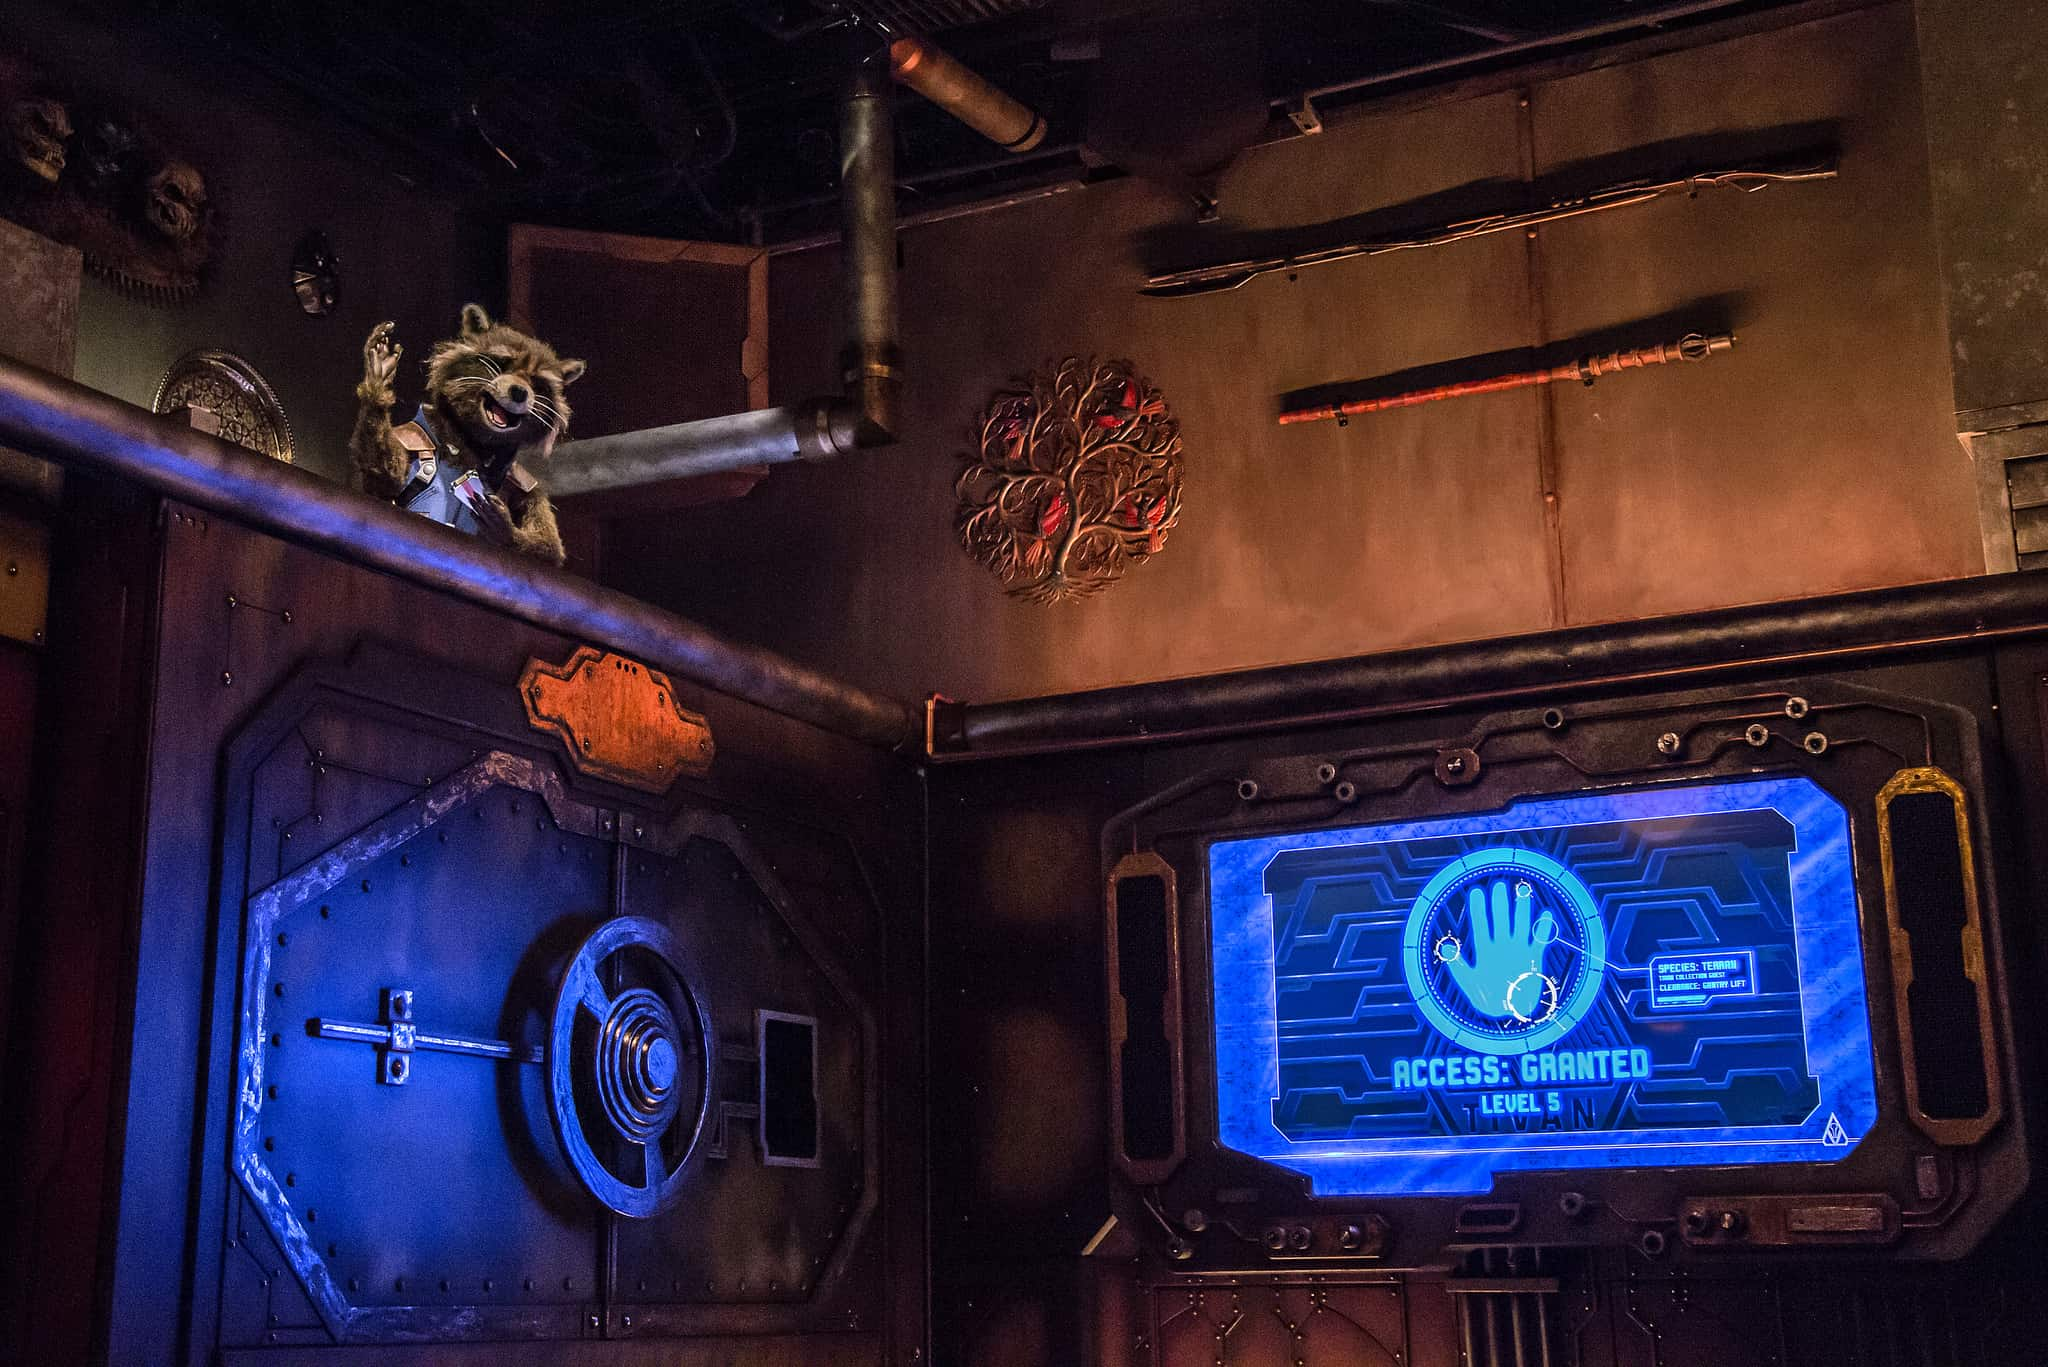 PHOTOS, VIDEO: Queue, Pre-Show, & Astonishing Rocket Raccoon Animatronic Revealed for Guardians of the Galaxy - Mission Breakout